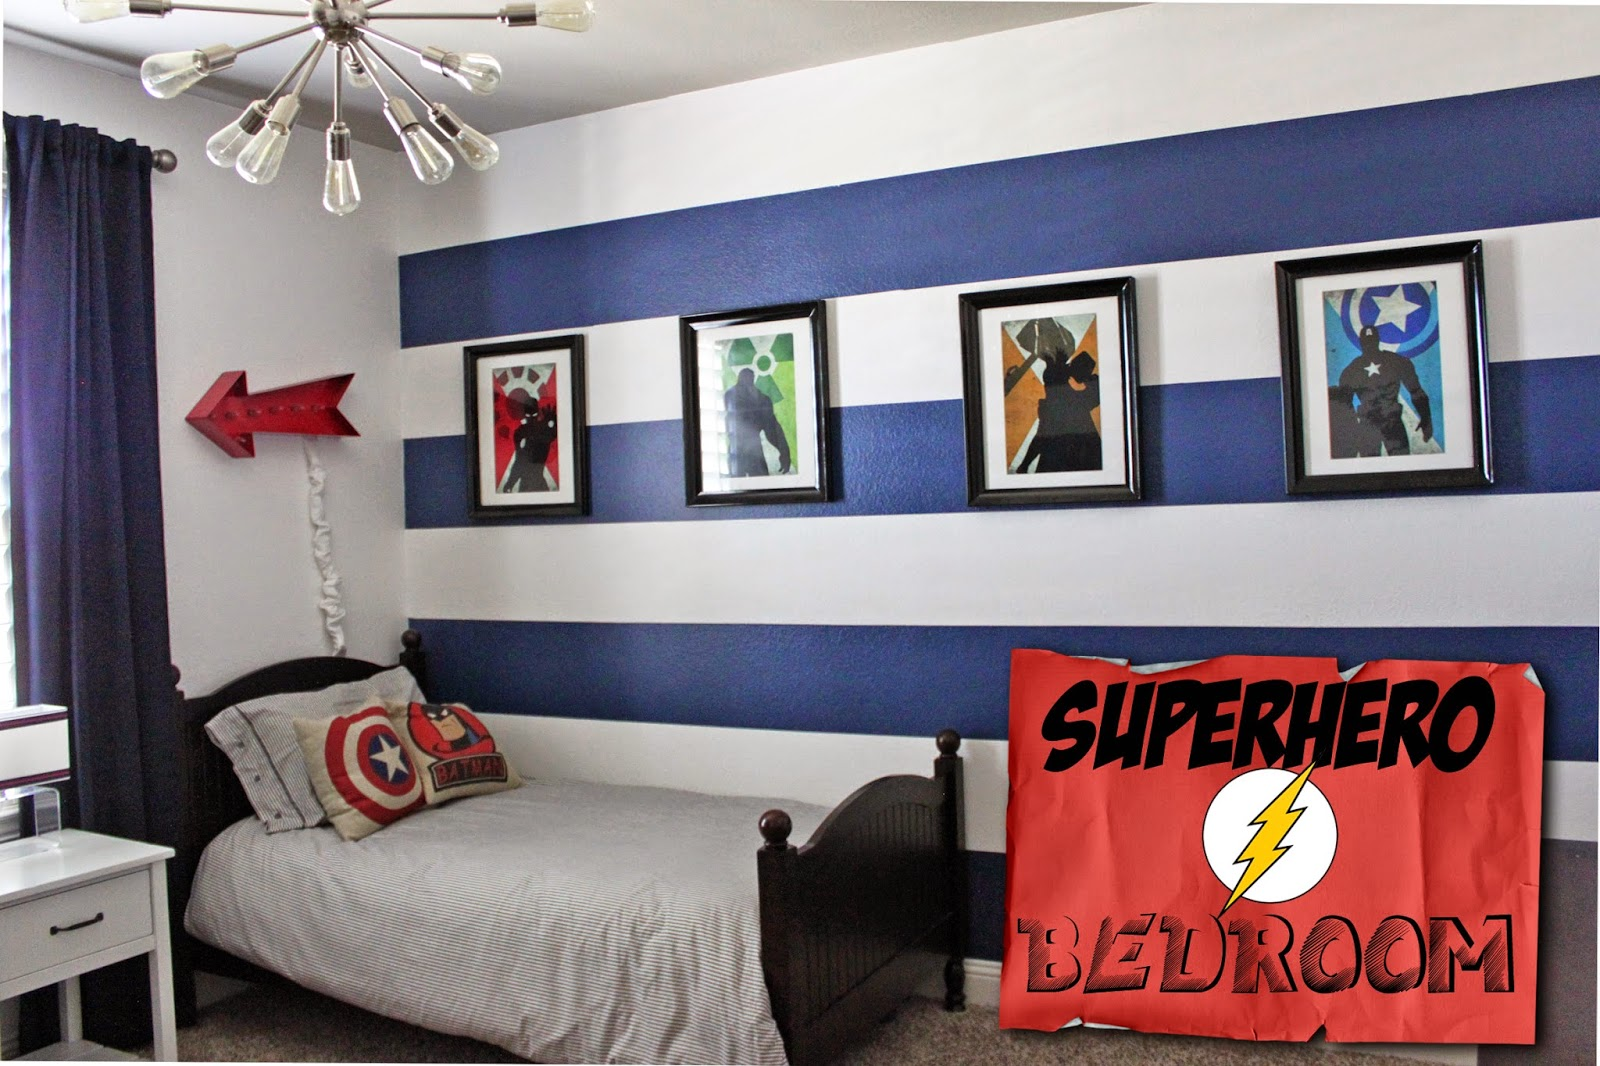 Superhero bedroom -